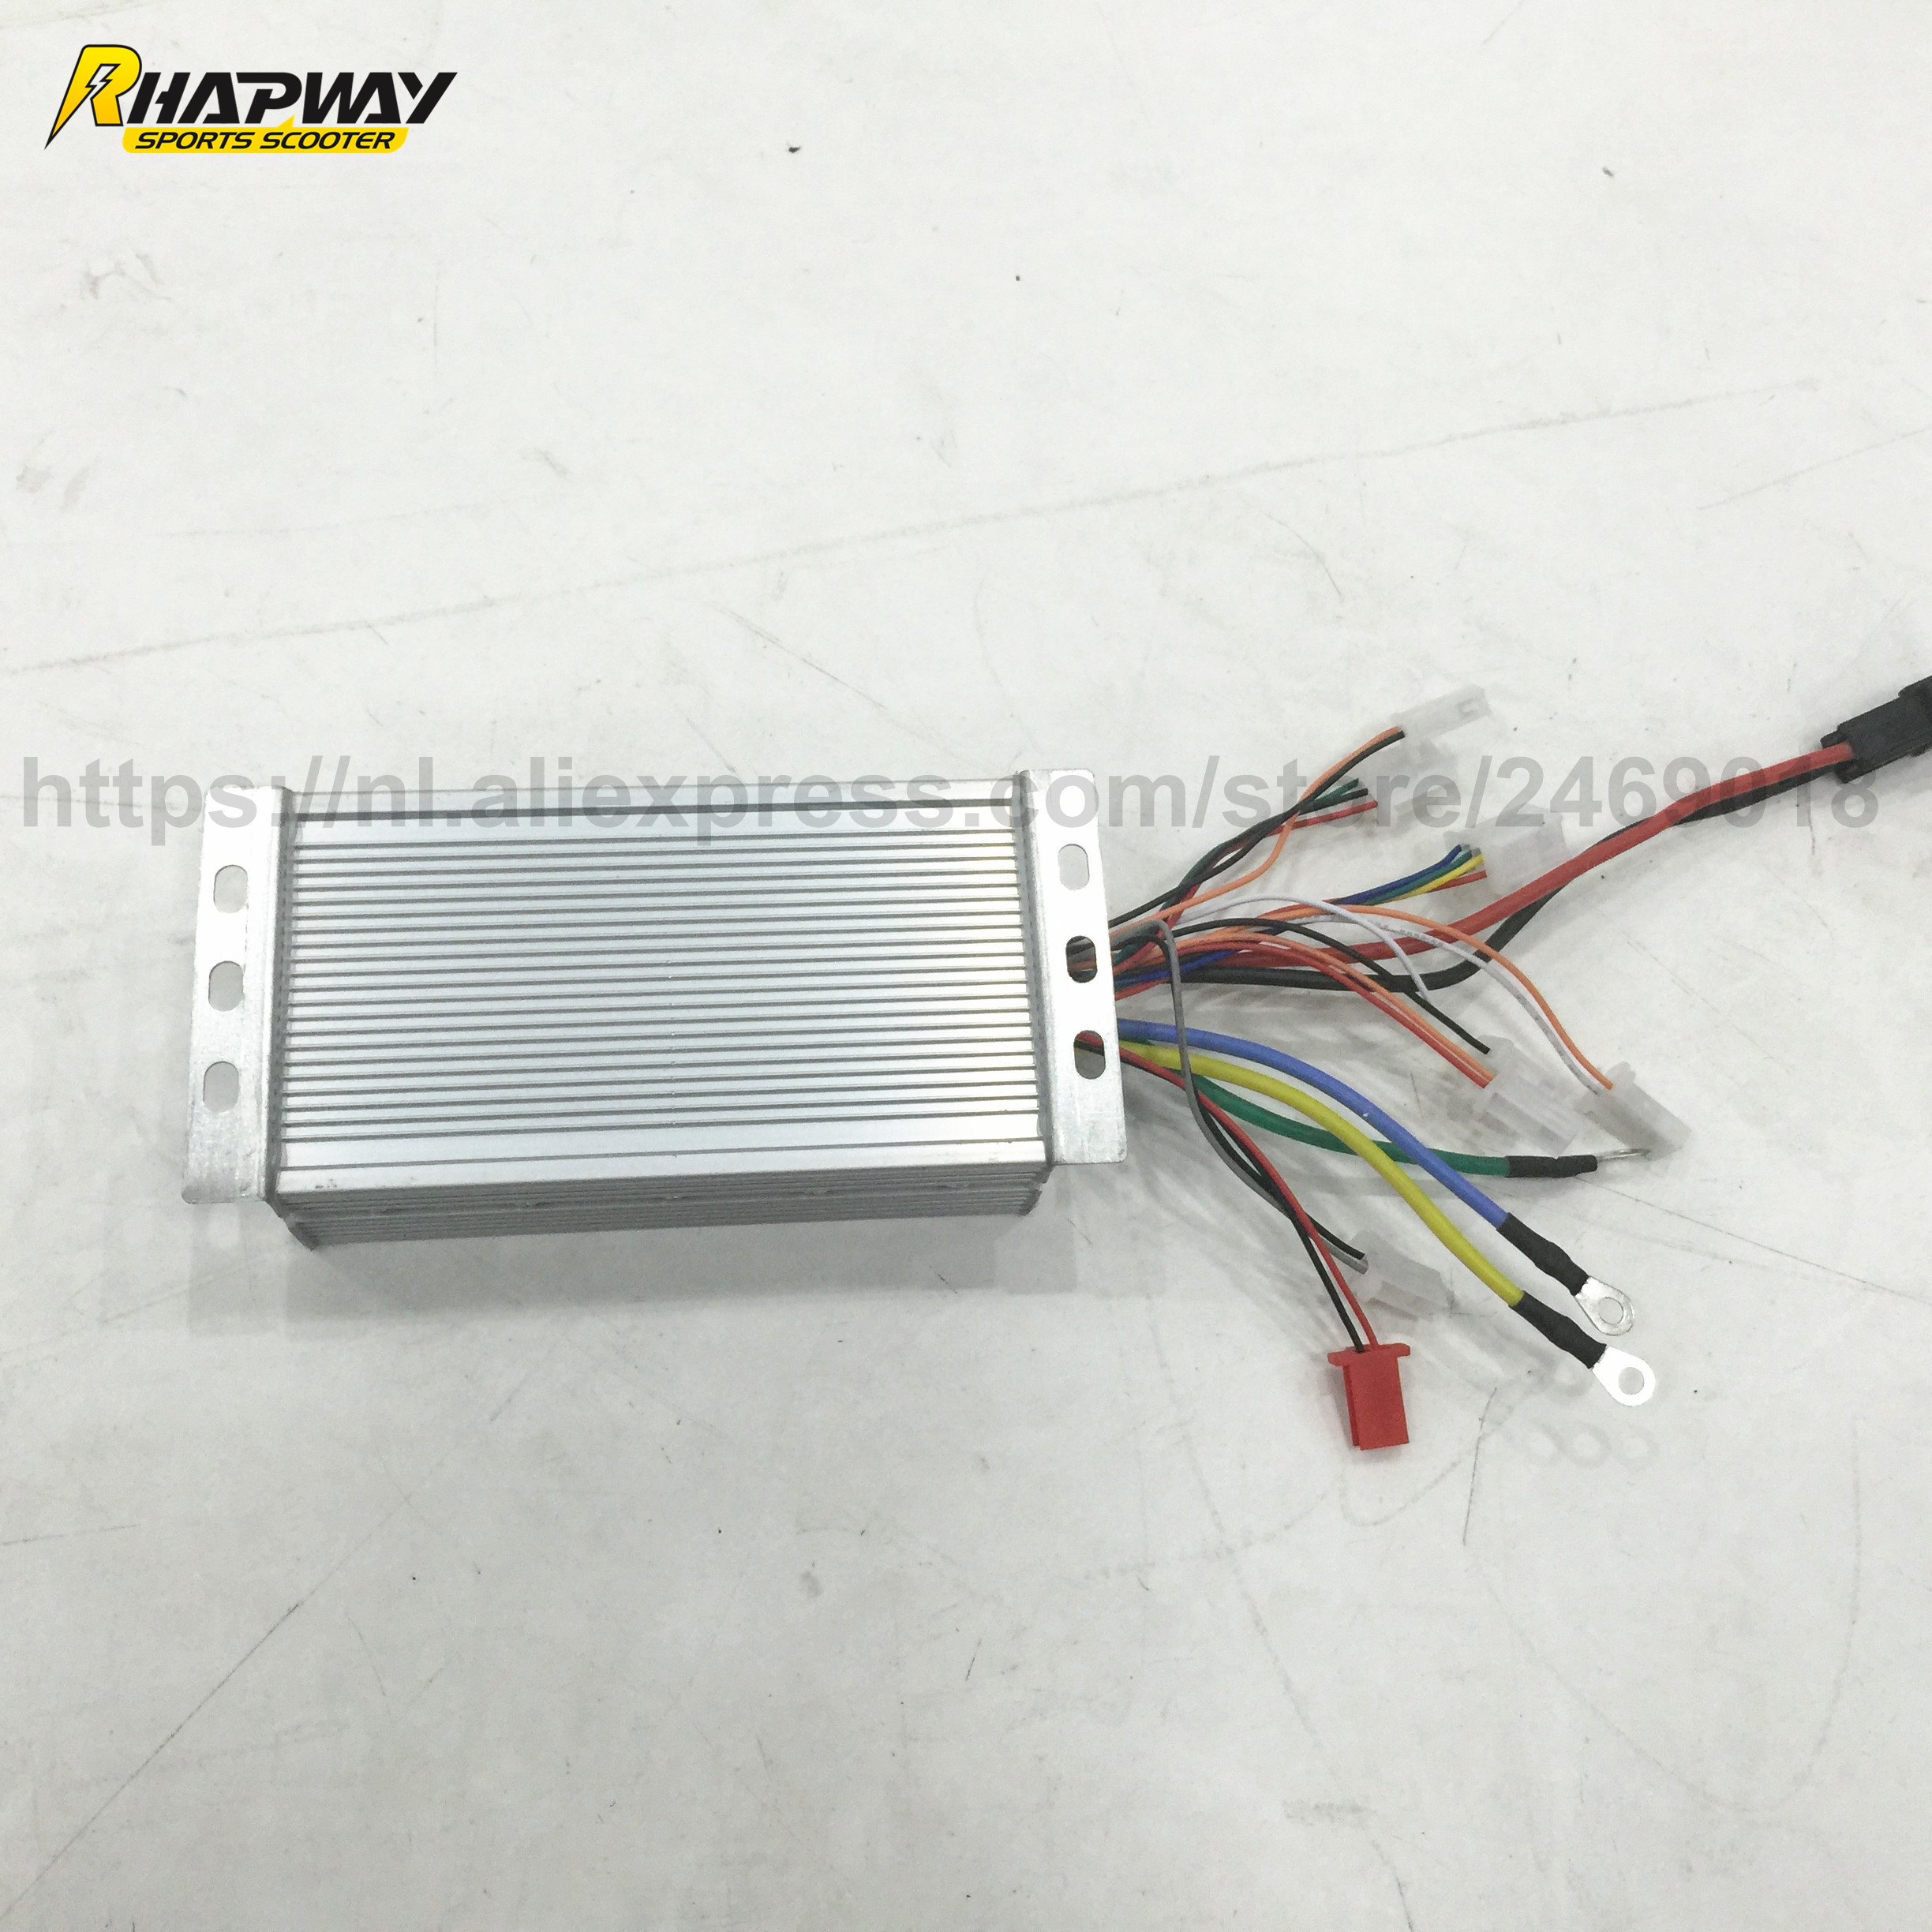 1500w 1600w Electric Scooter Controller 48v Brushless Dc Bldc Motor Spare Parts In Accessories From Sports Diagram Quotes